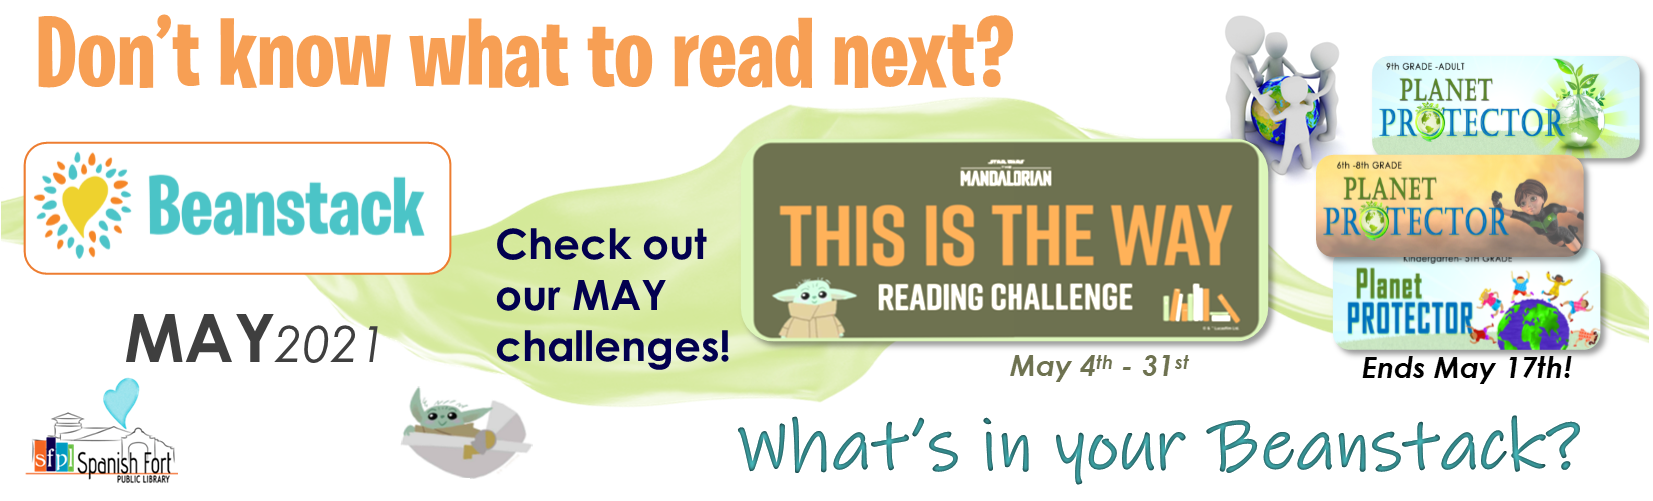 Click the image to check out the May Beanstack Challenges